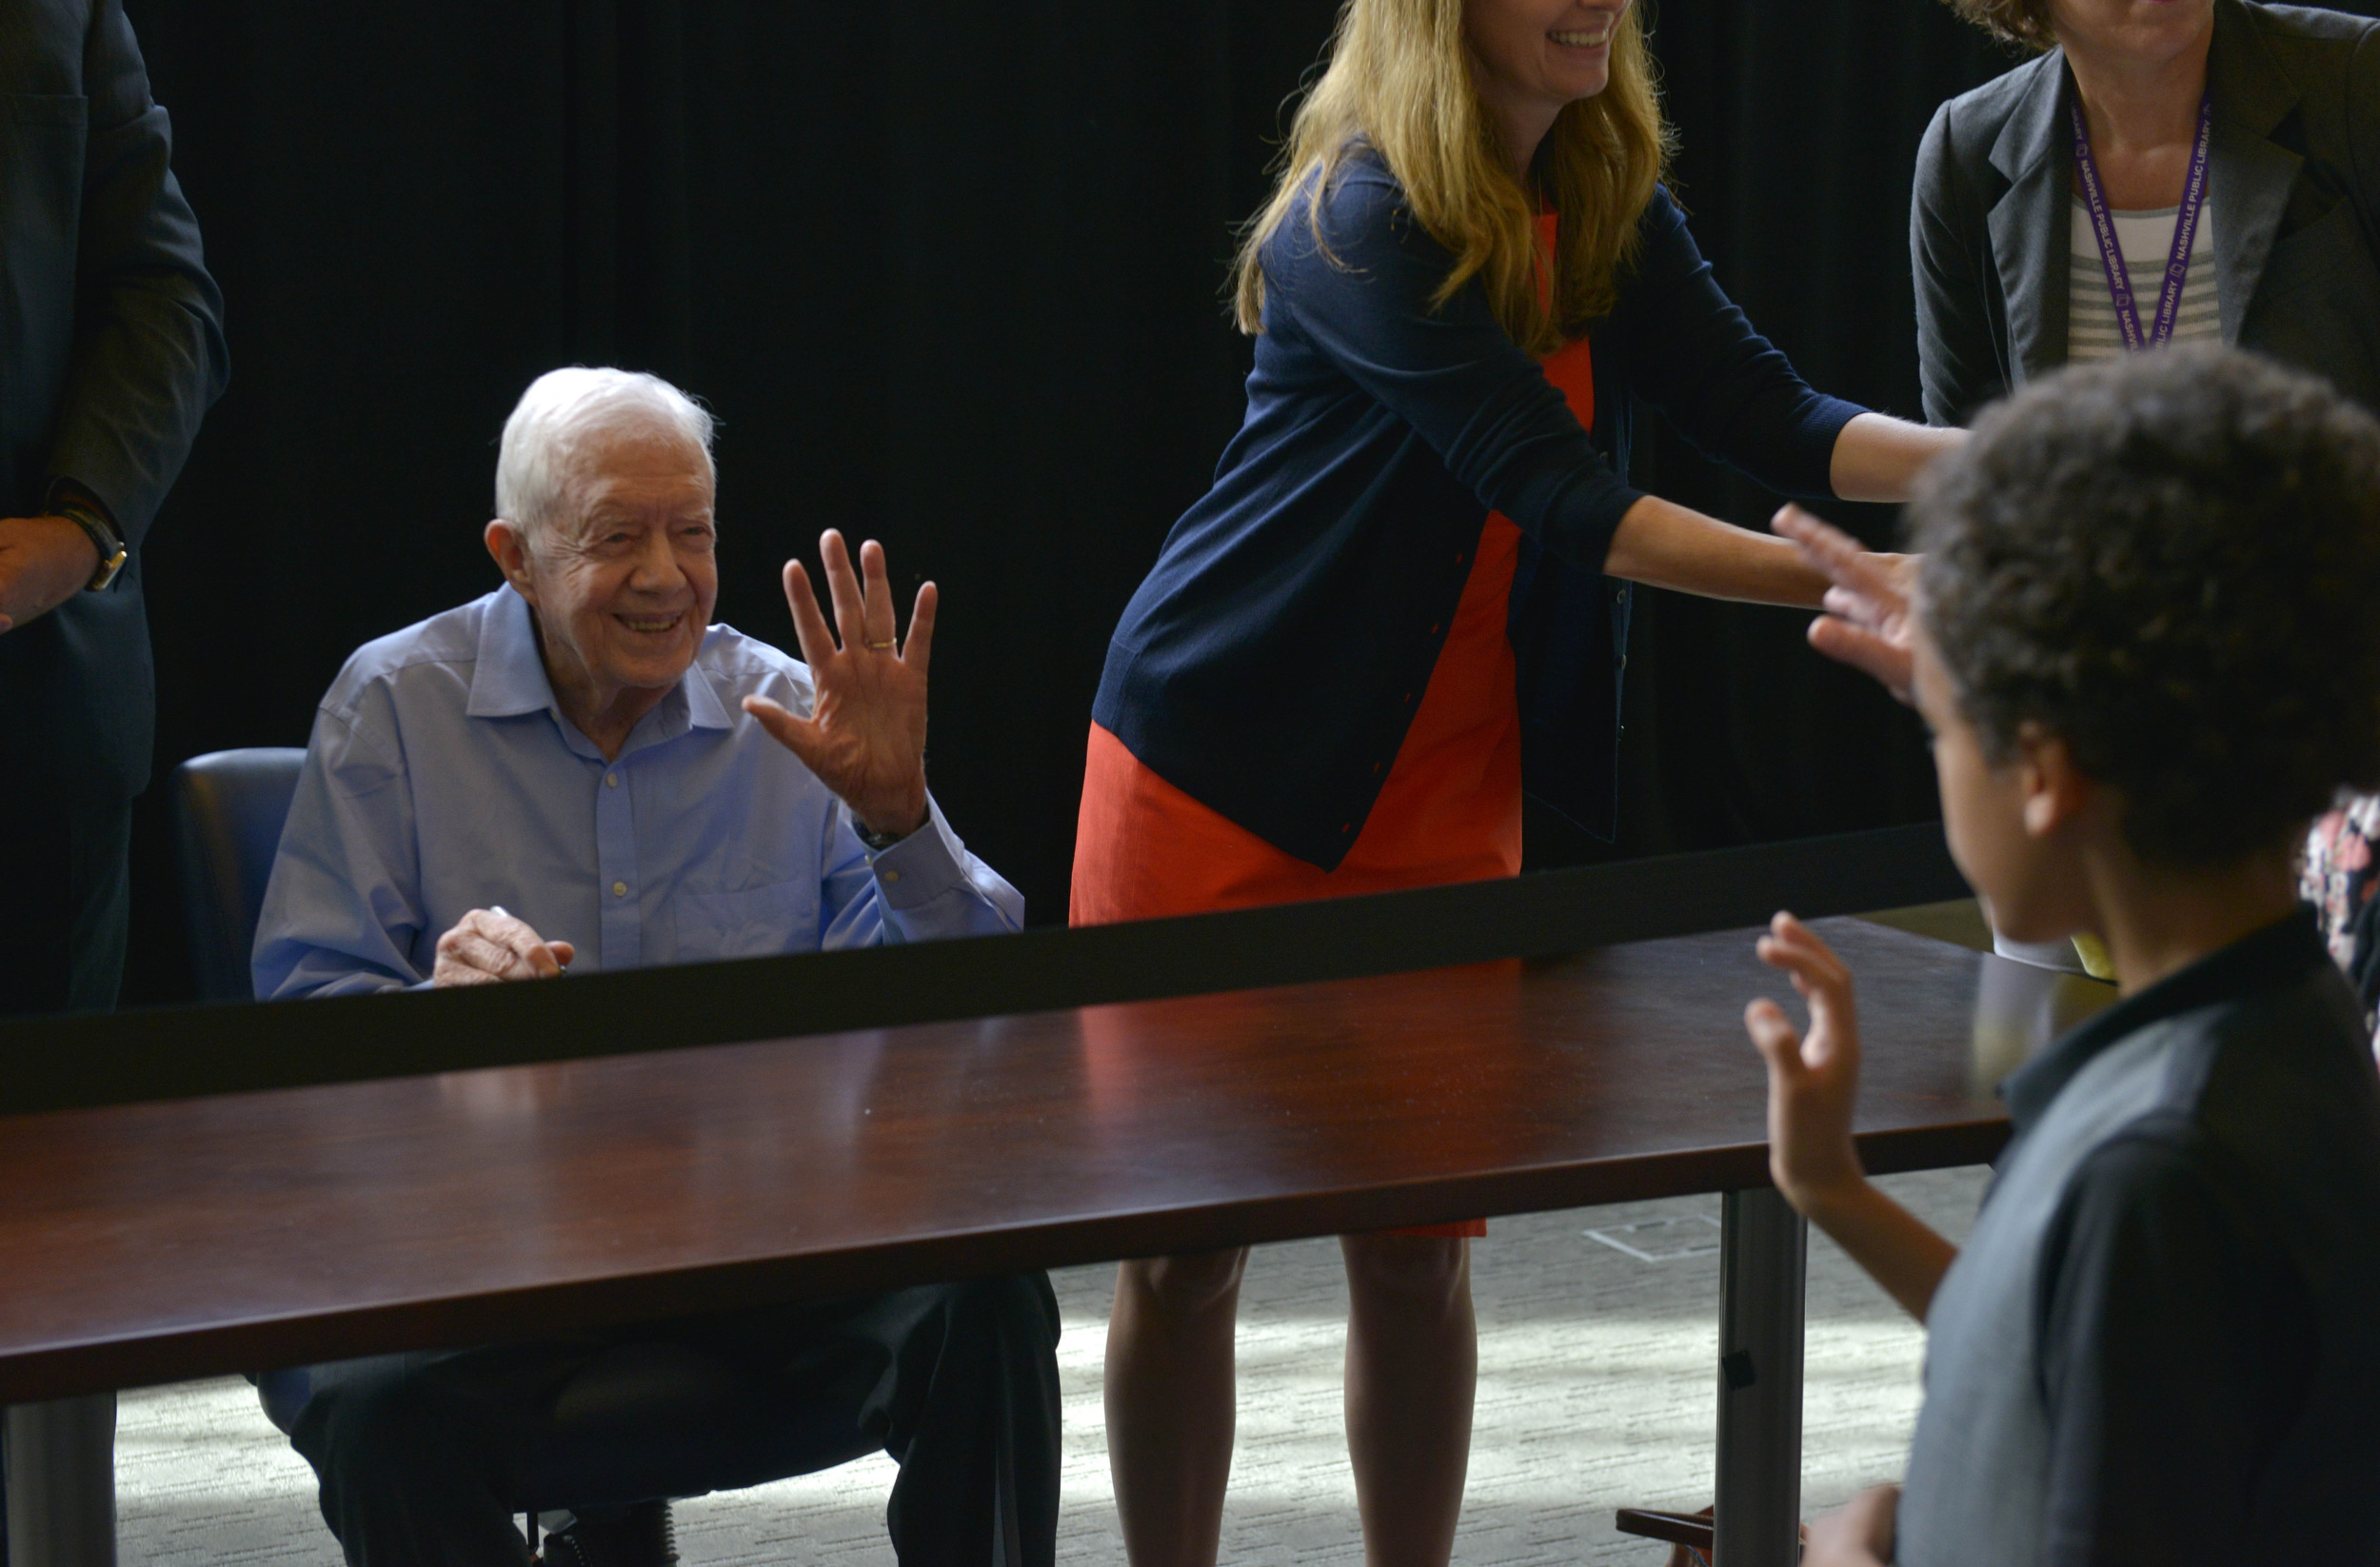 Former President Jimmy Carter waves to a young boy as he does a book signing at the downtown branch of the Nashville Public Library July 23, 2015 in Nashville, Tenn.